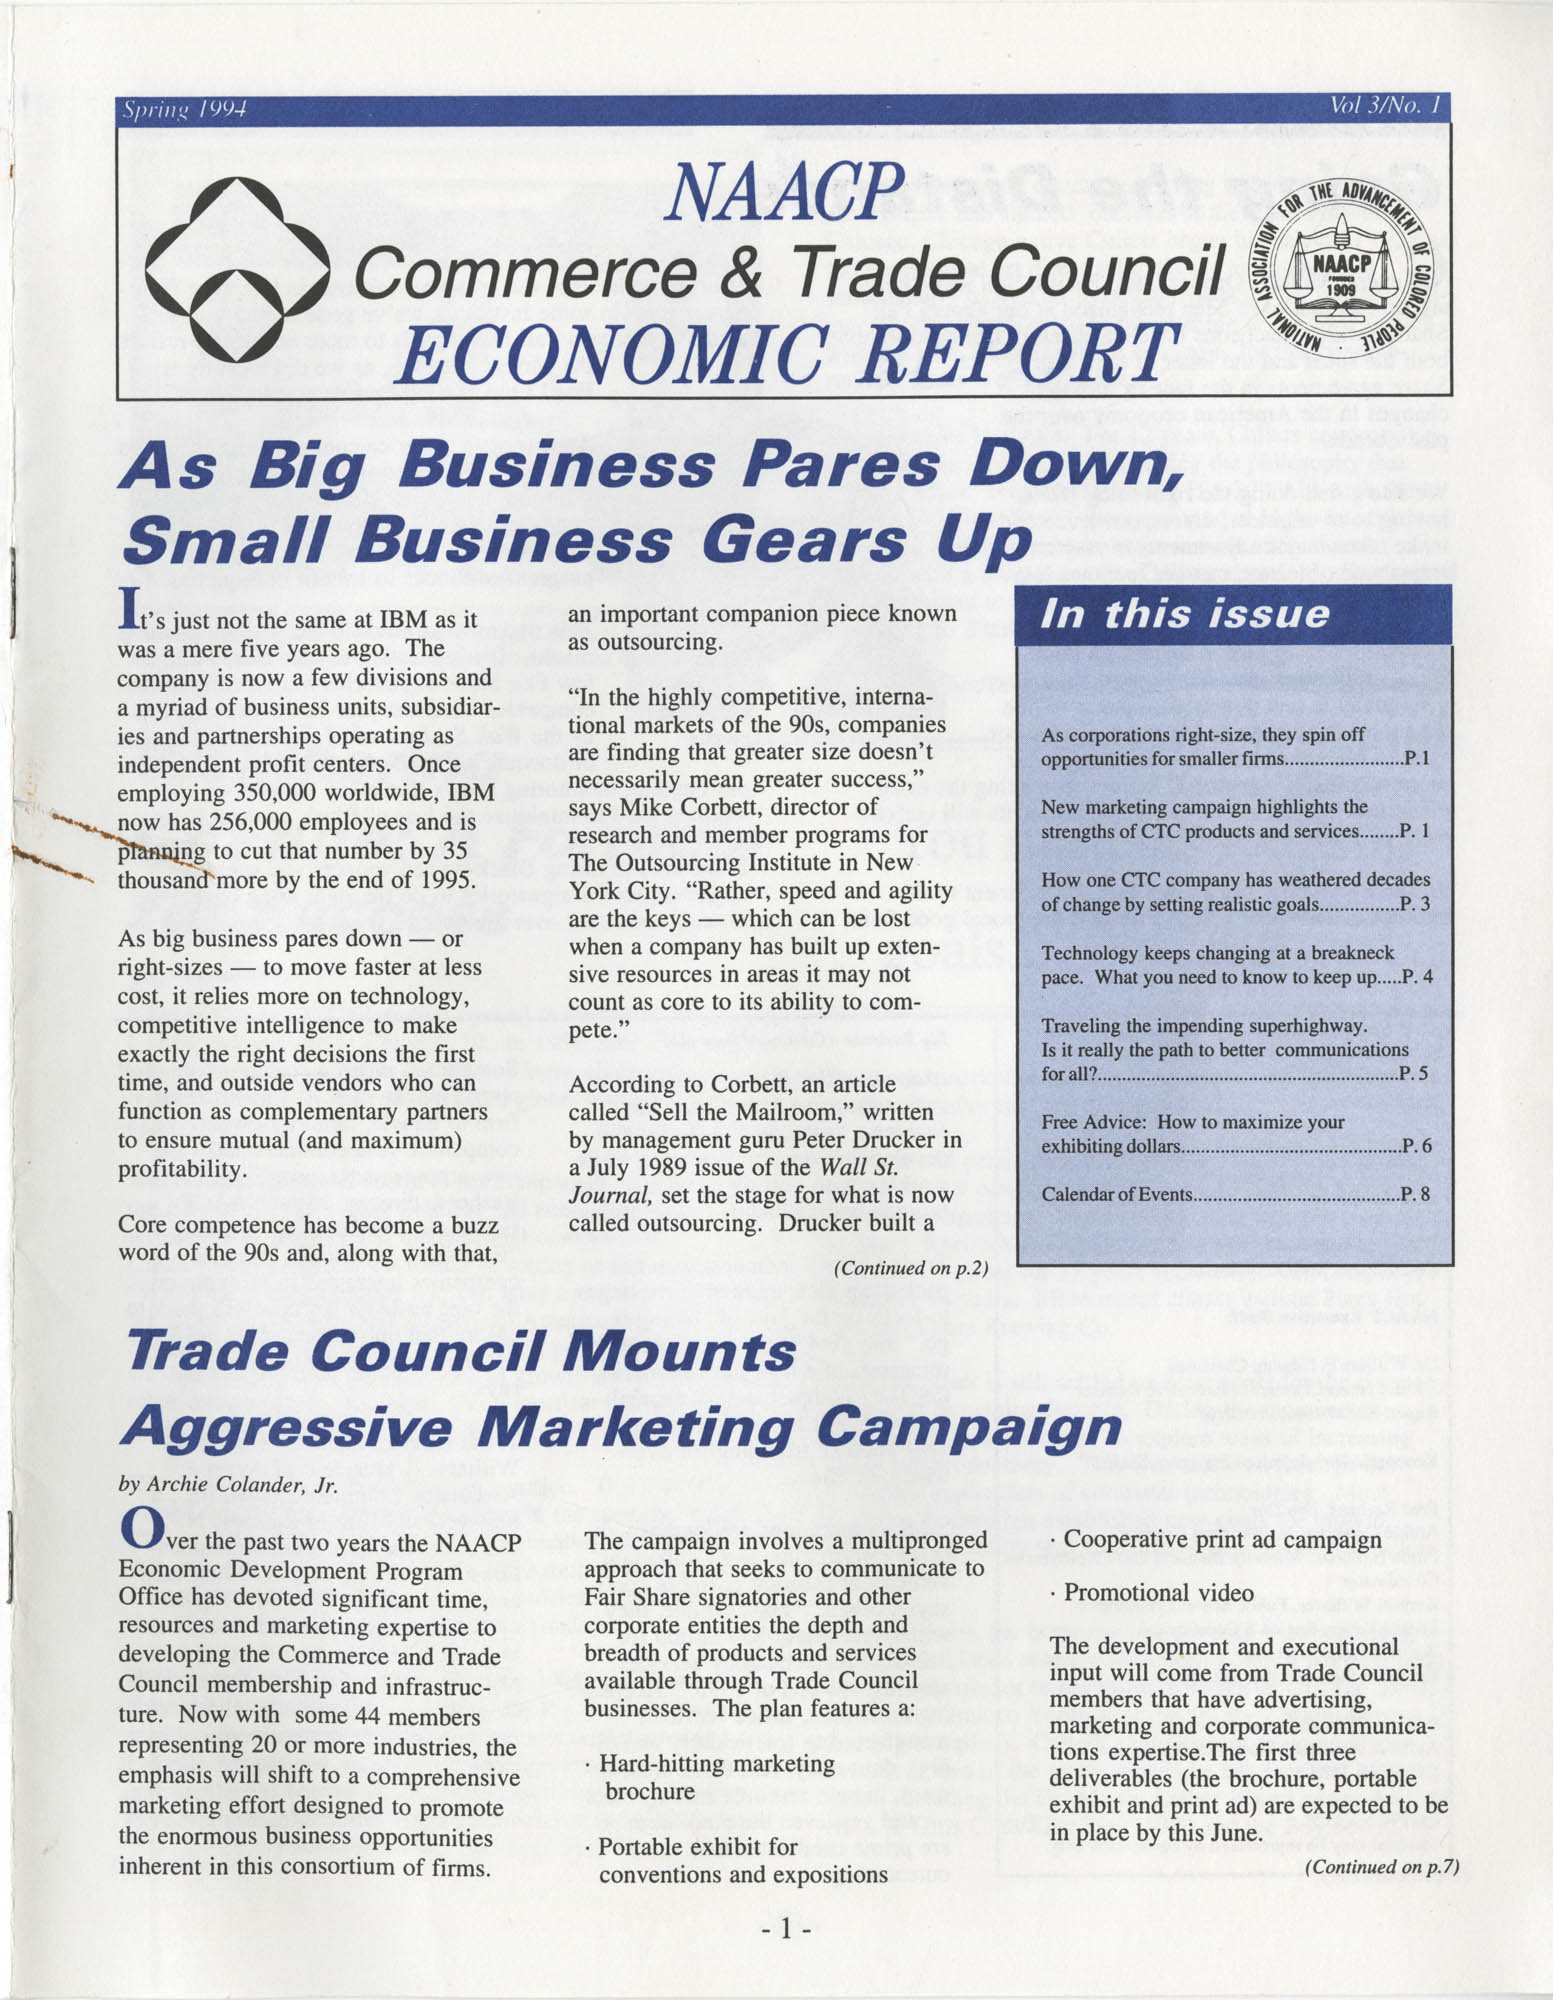 NAACP Commerce and Trade Council Economic Report, Spring 1994, Vol. 3, No. 1